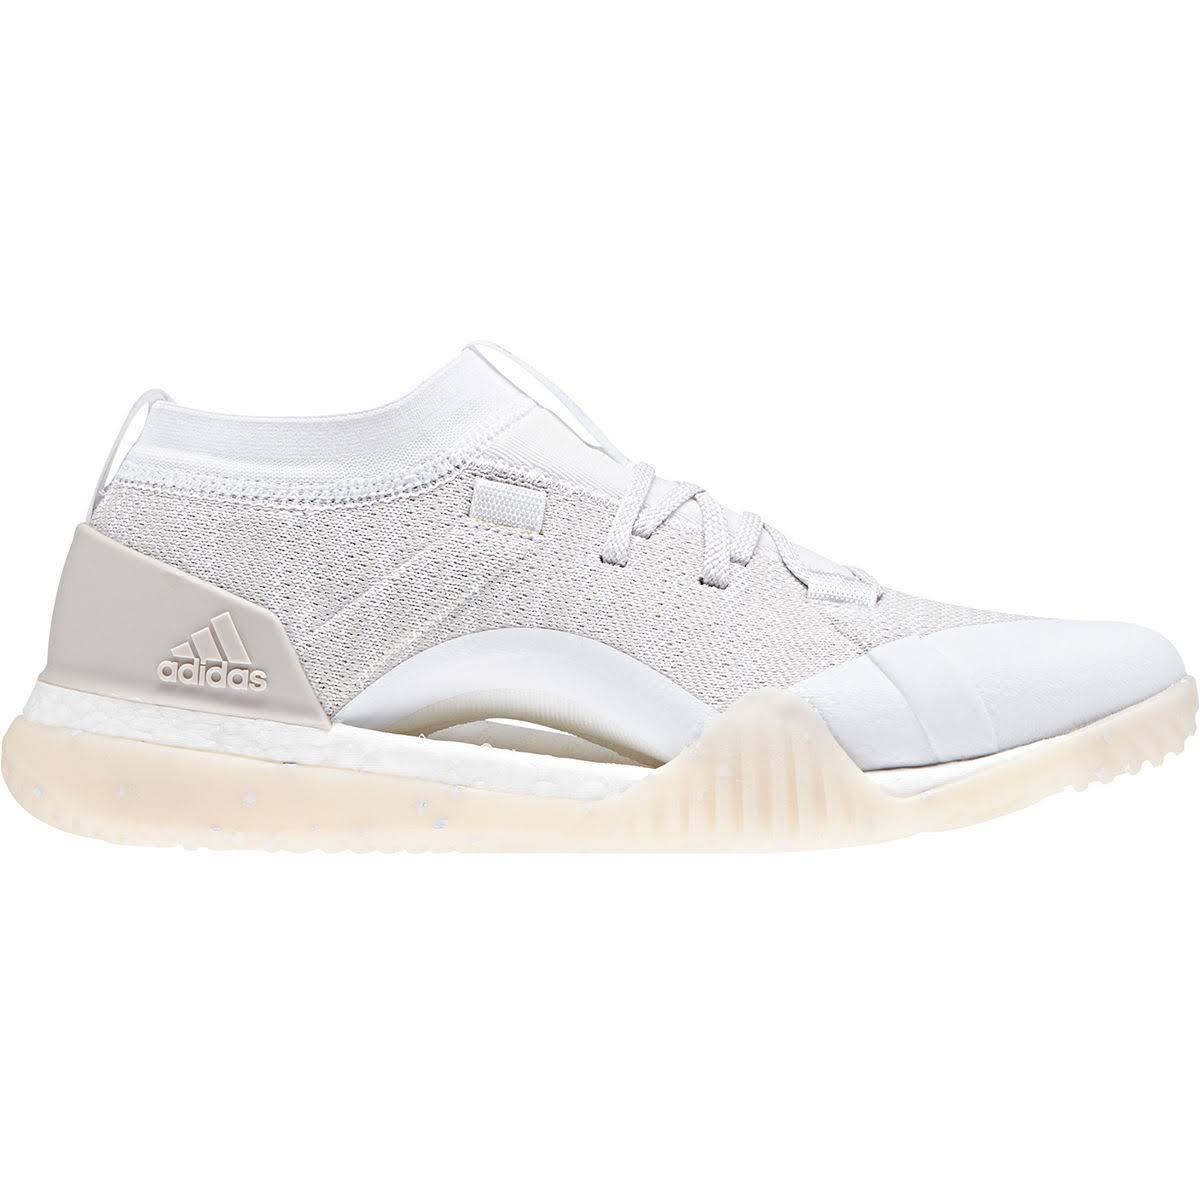 adidas Women's PureBoost X TR Shoes 4.5 FTWR WHITE/CHALK PEA Fitness Shoes